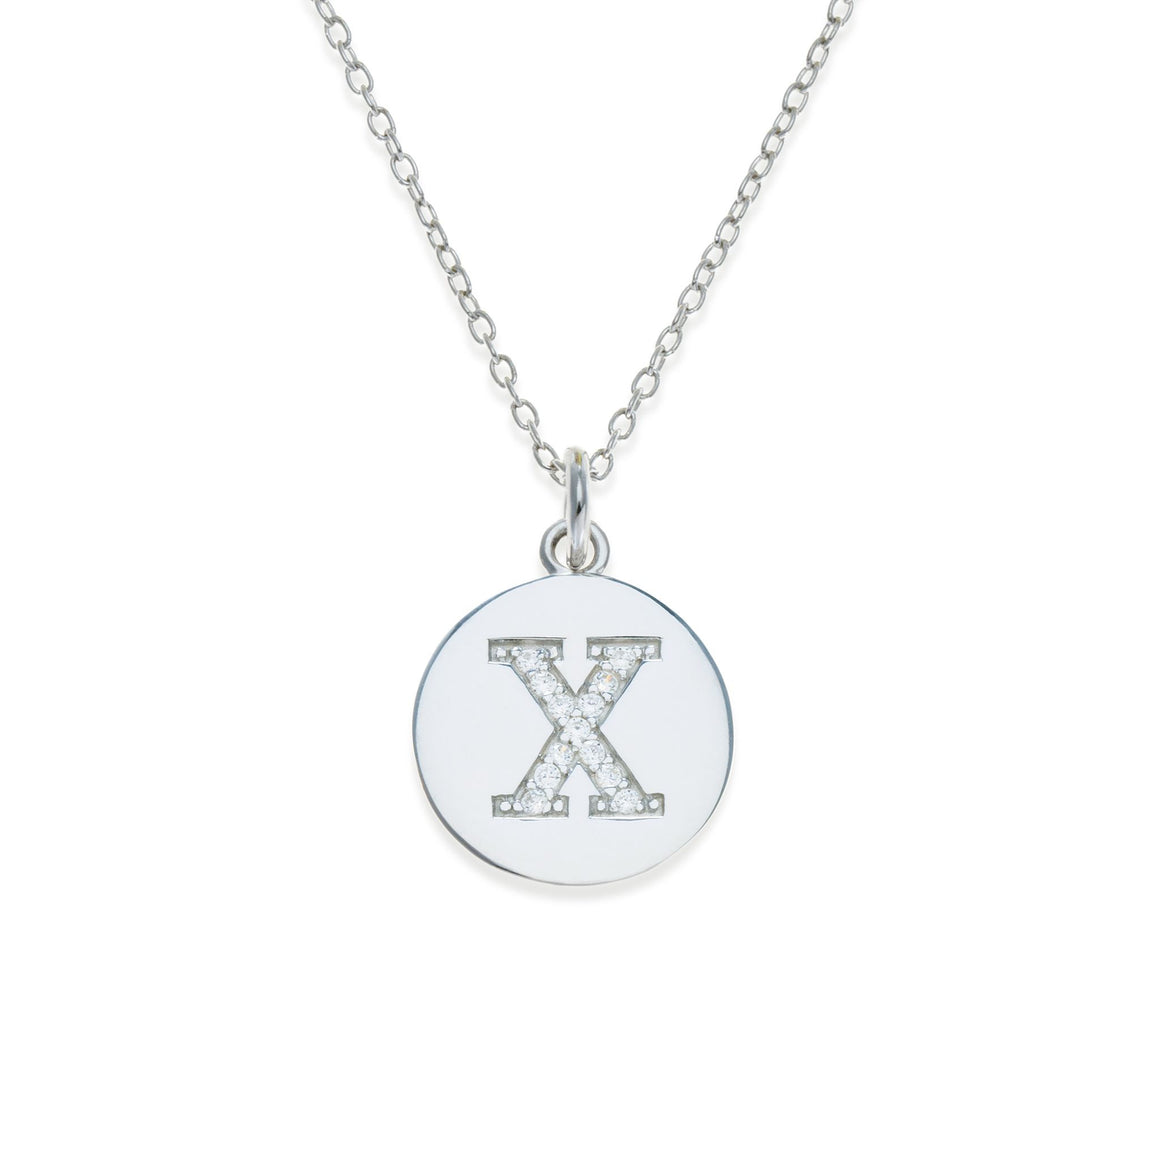 Sterling Silver Initial Necklace - X | Kith & Kin | It's Personal Collection